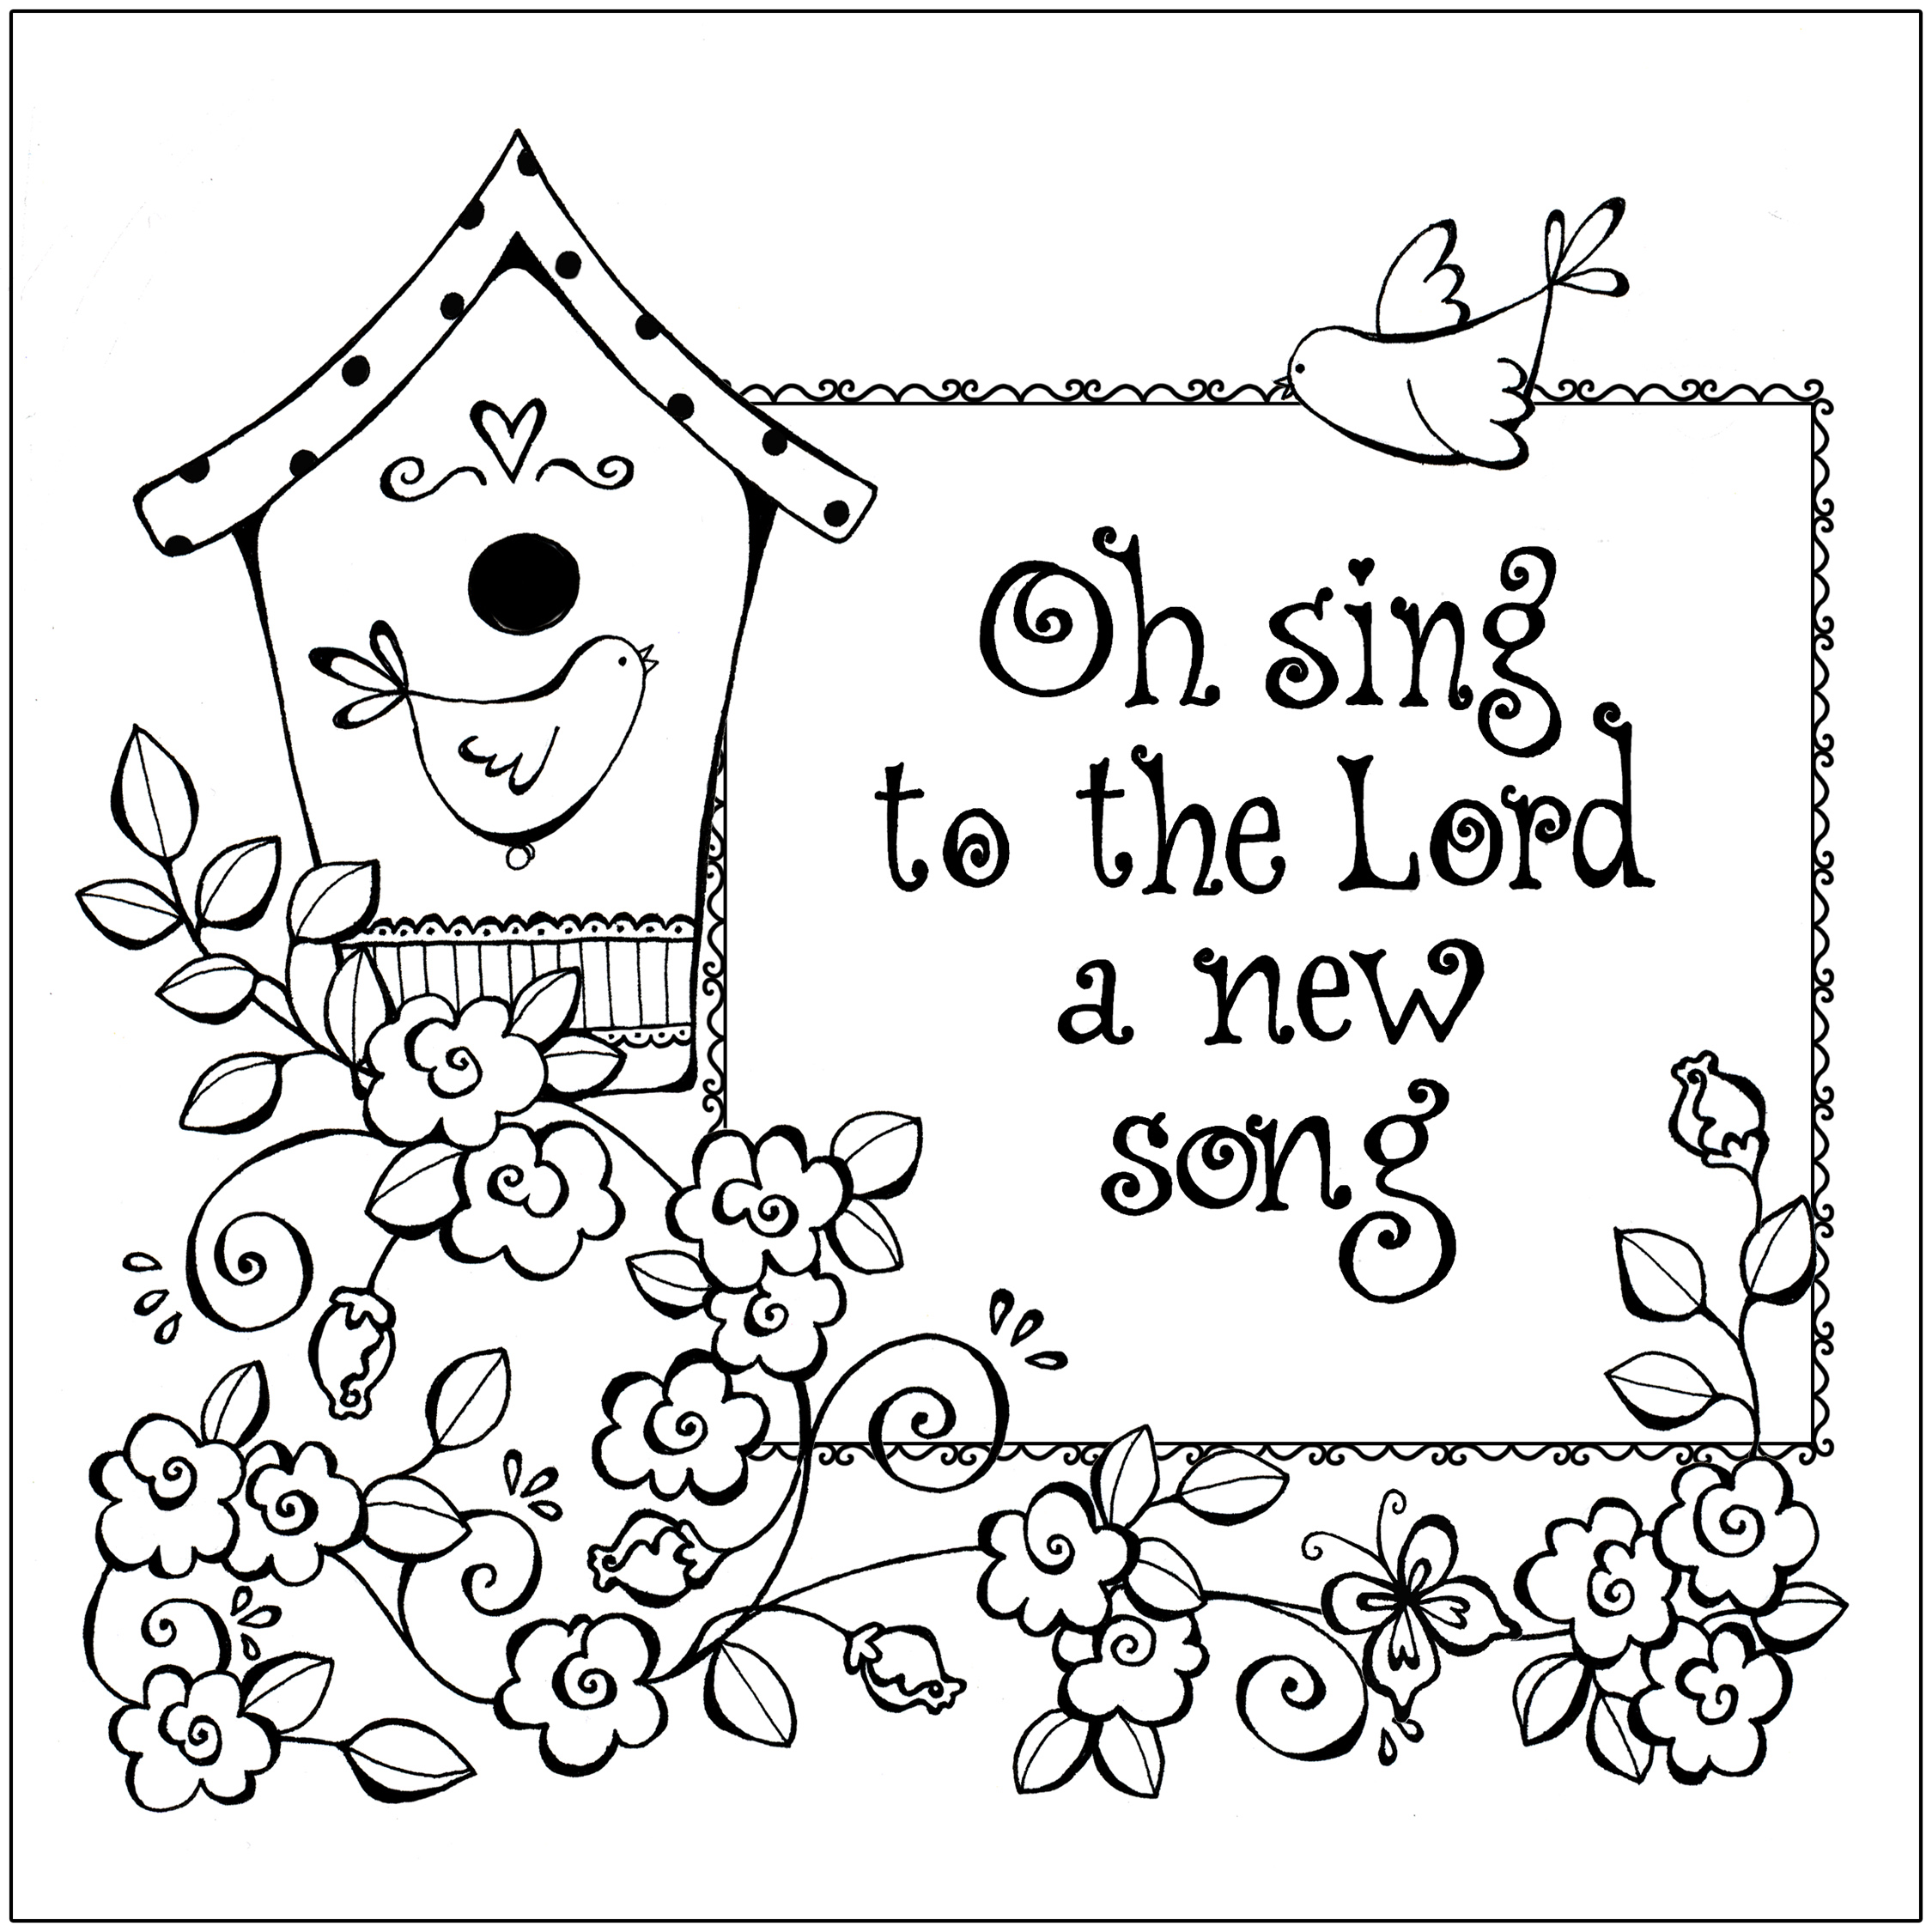 christian stuff coloring pages - photo#33